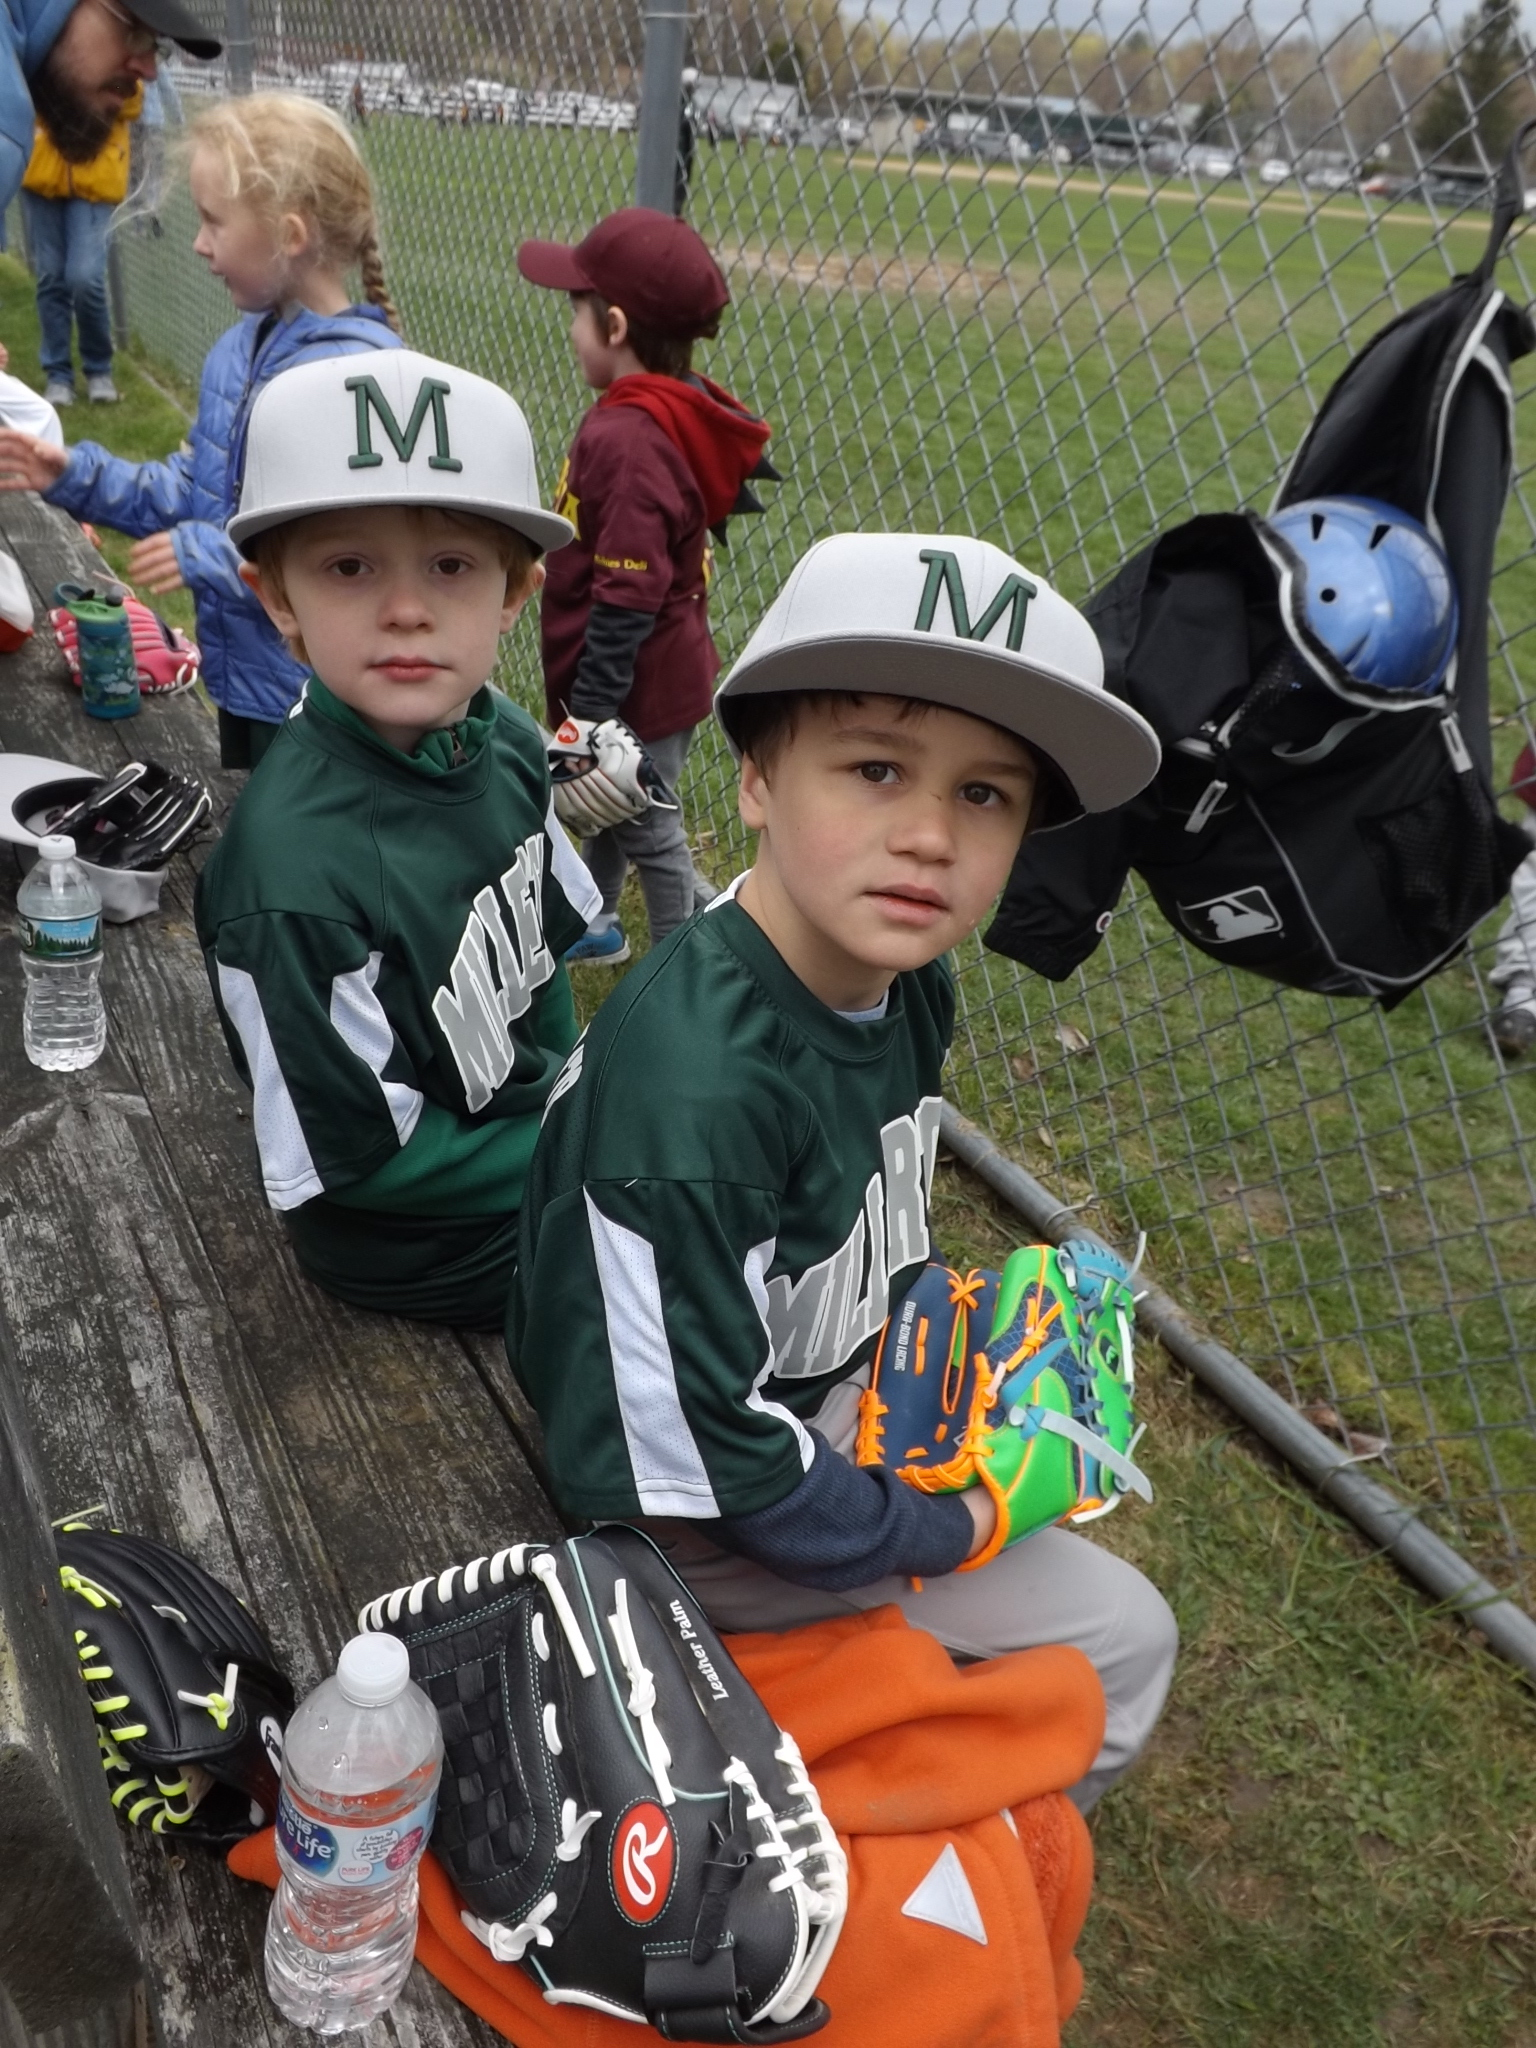 <strong>From left, Millerton T-Ball teammates Christopher Galvin and Hayden Herron watched their team play a game against Amenia during Millerton's 2019 Opening Day of baseball season.<em> Archive photos by Kaitlin Lyle</em></strong>